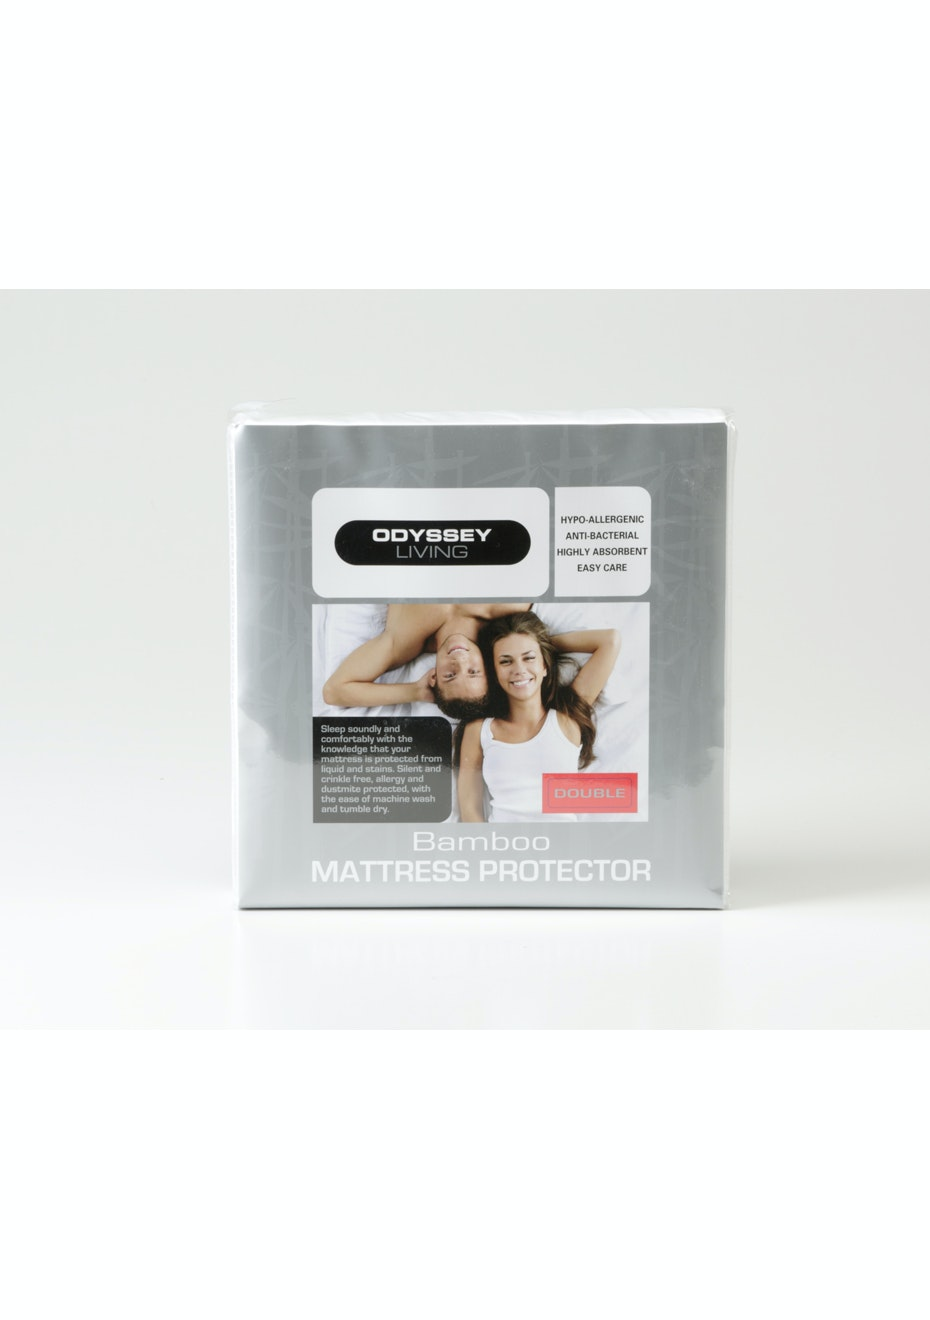 Bamboo Mattress Protector - Double Bed